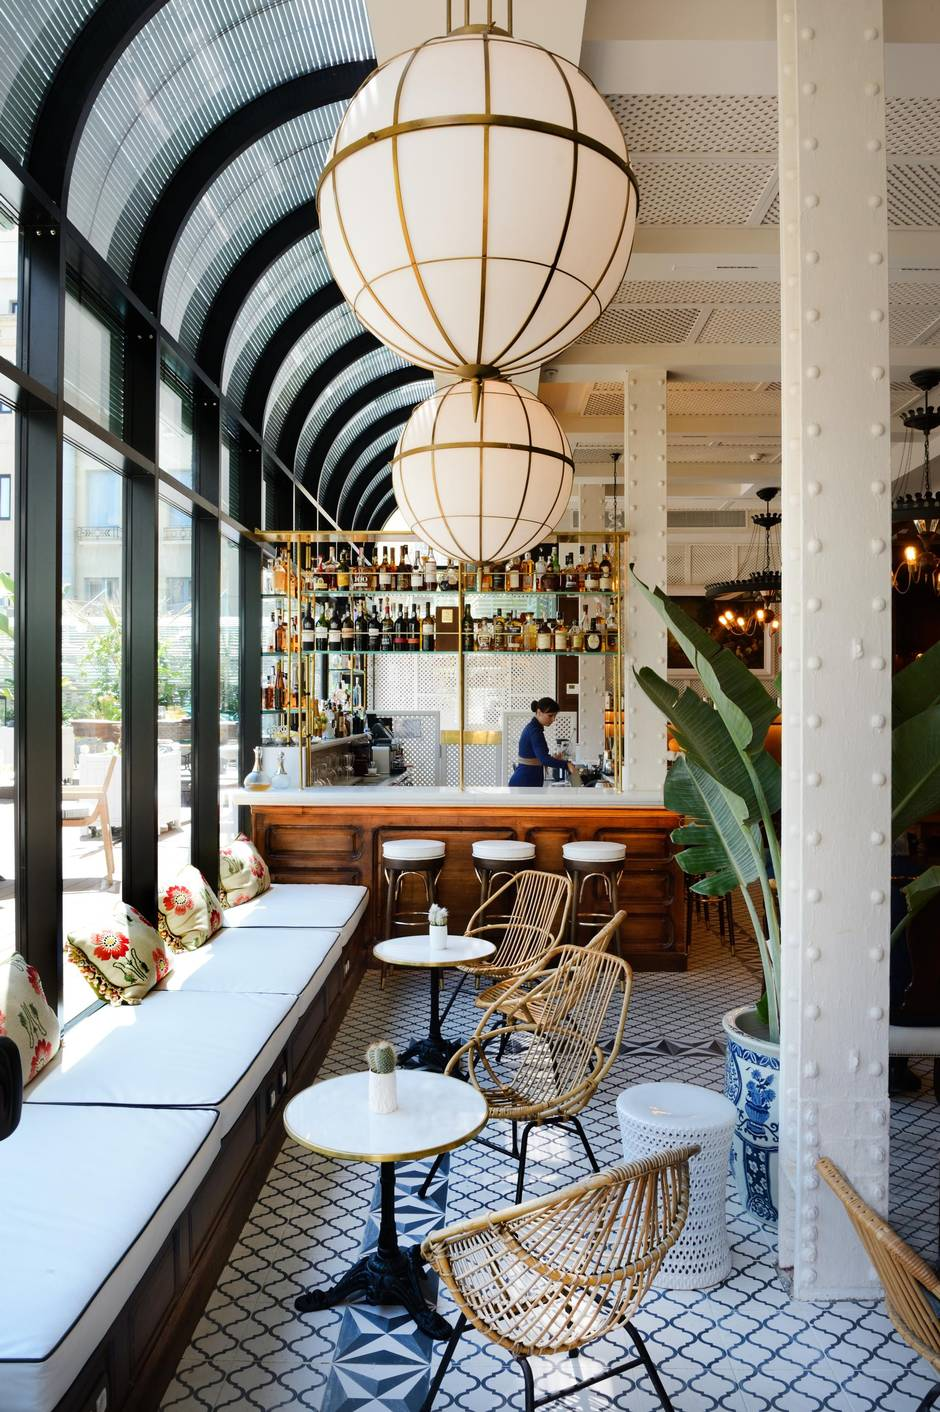 Cotton House Hotel offers a warm welcome in beautiful Barcelona